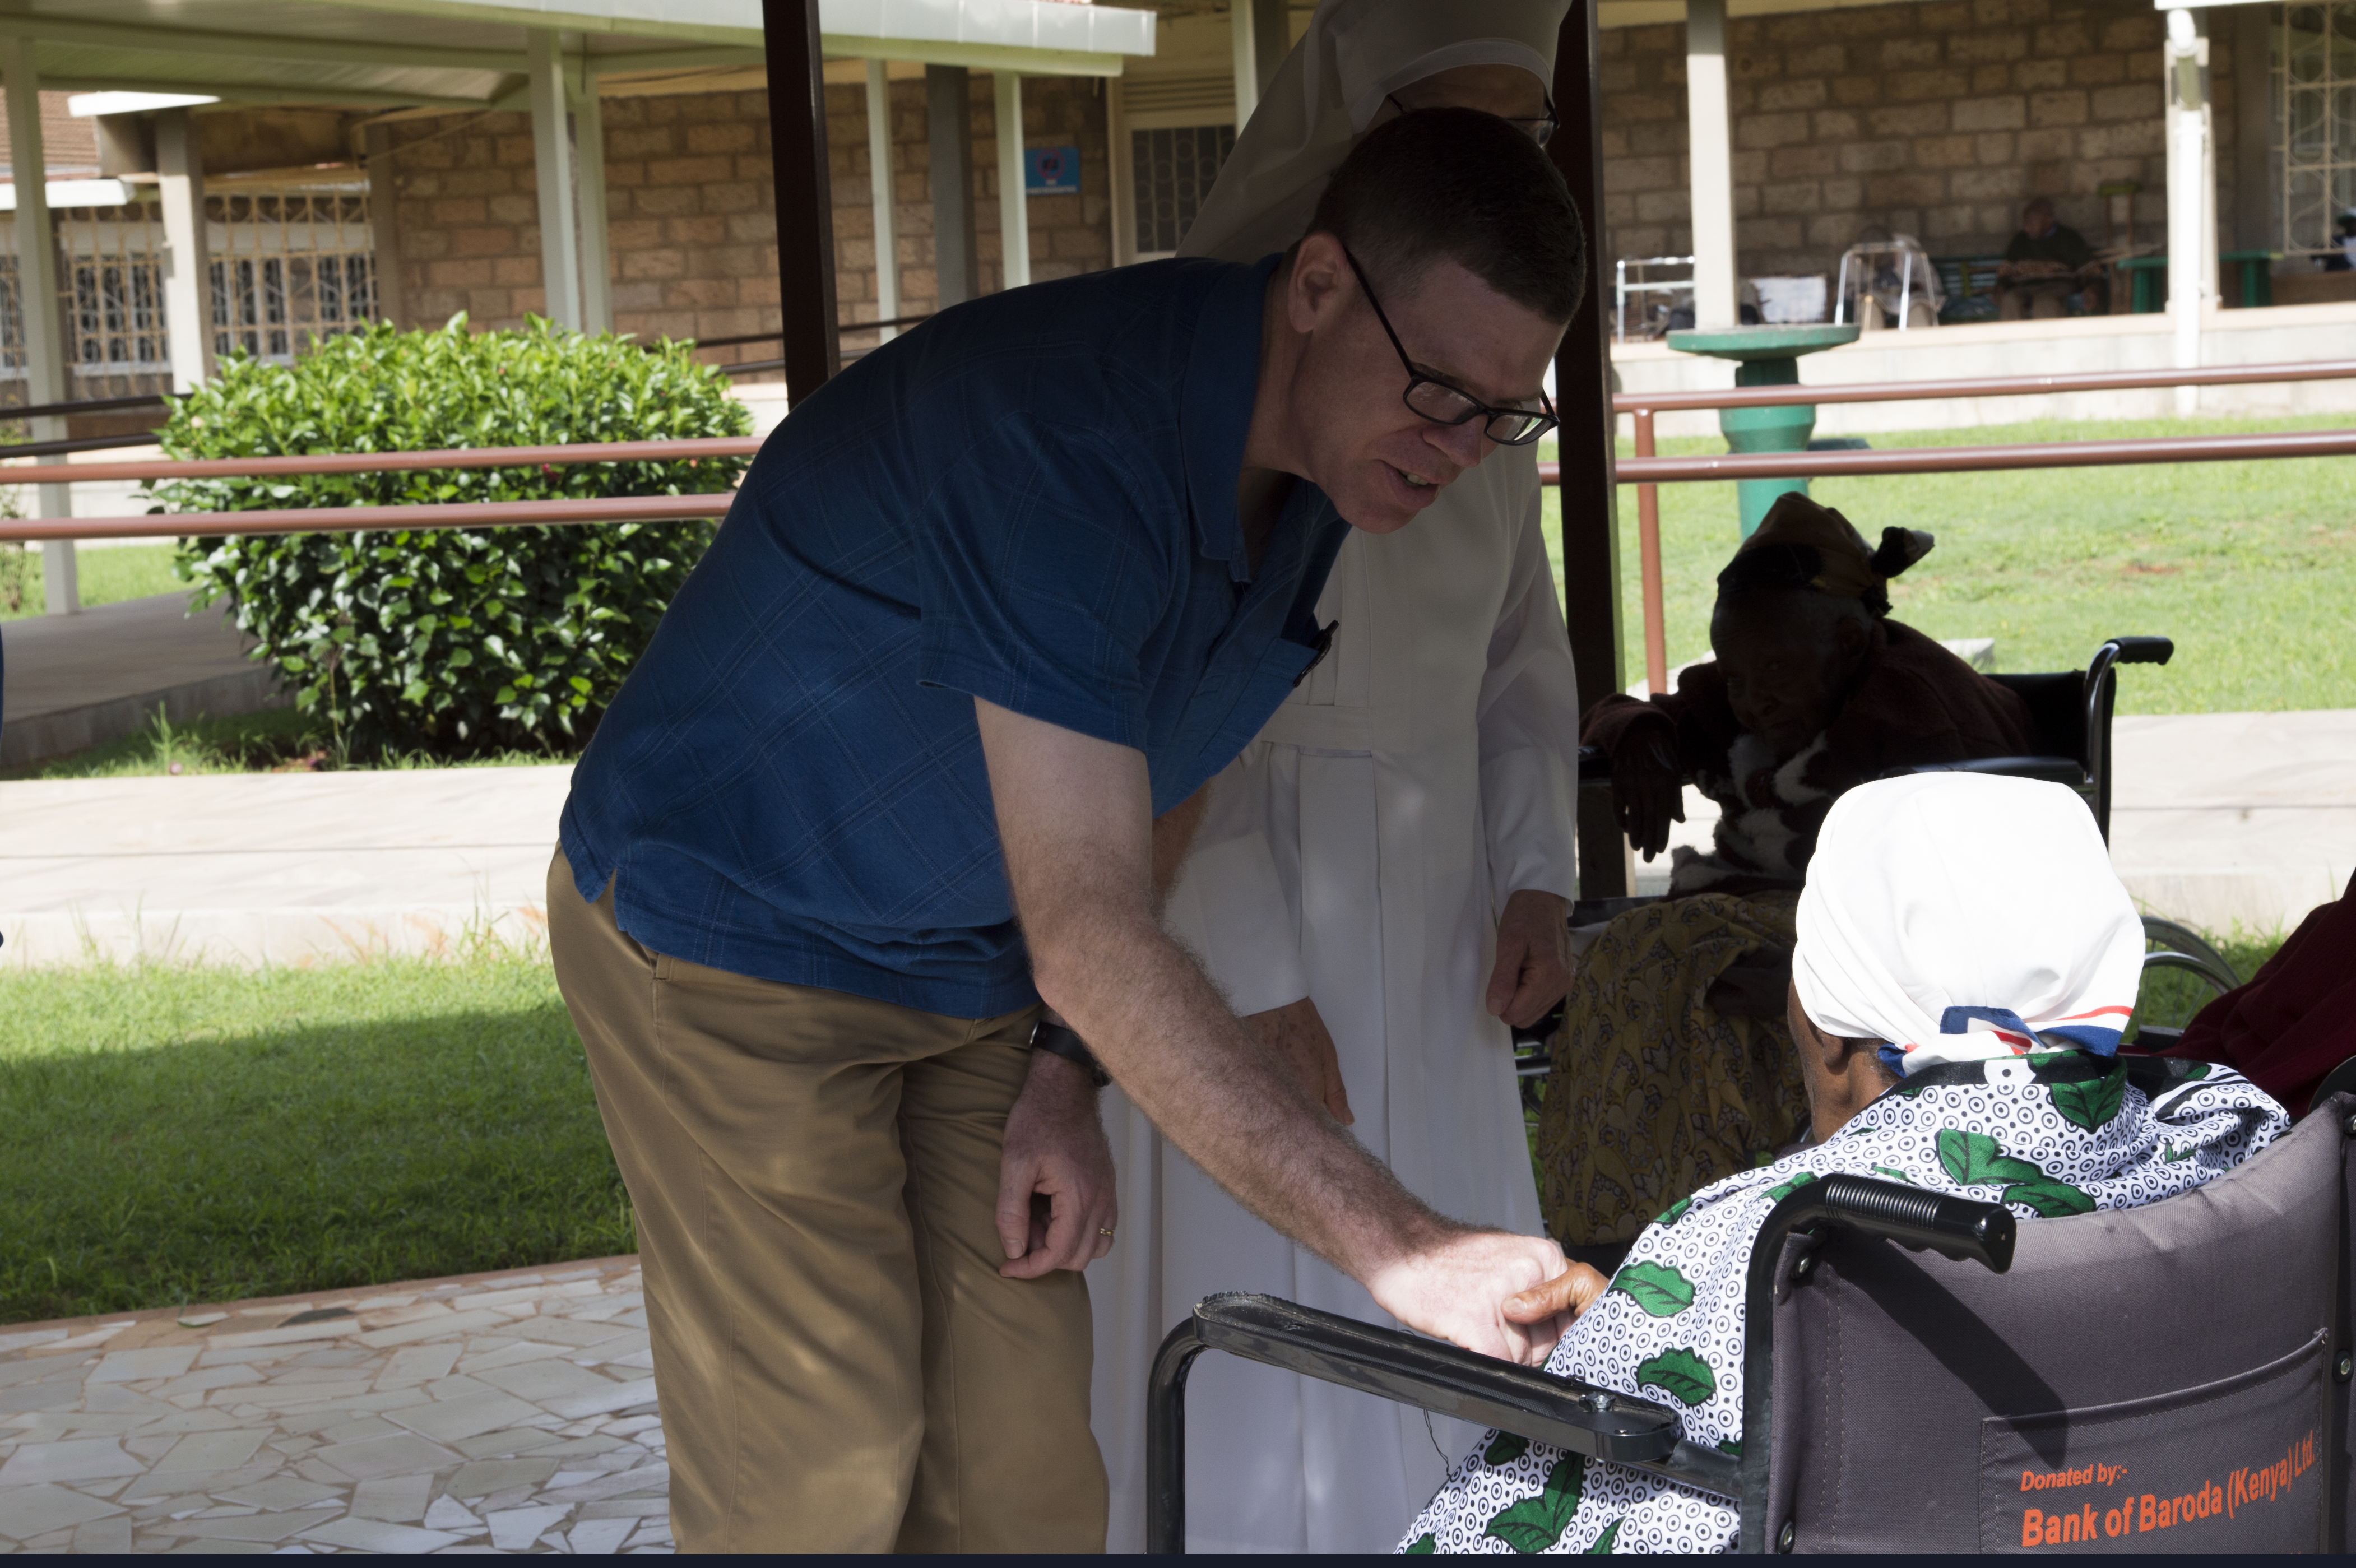 U.S. Navy Chaplain Travis Moger, Combined Joint Task Force-Horn of Africa Office of Religious Affairs director, provides spiritual counseling to a resident of Nyumba Ya Wazee, or House of the Elderly, May 9, 2016, at Nairobi, Kenya. The House of the Elderly is a part of the Little Sisters of the Poor, a non-profit organization that provides shelter and support for people who need assistance. (U.S. Air Force photo by Staff Sgt. Eric Summers Jr.)